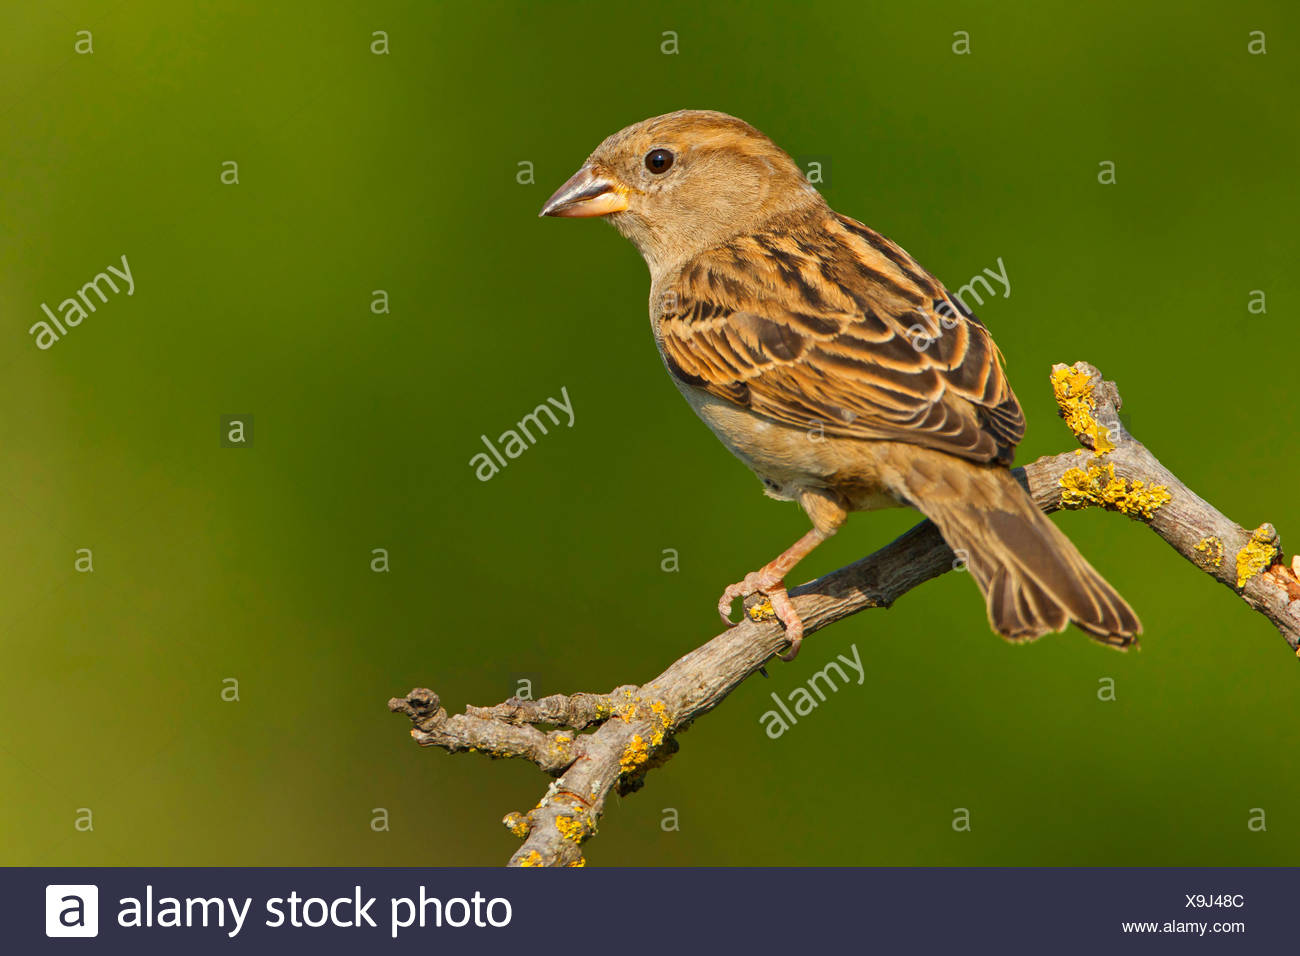 house sparrow (Passer domesticus), female sitting on a branch, Germany, Rhineland-Palatinate Stock Photo